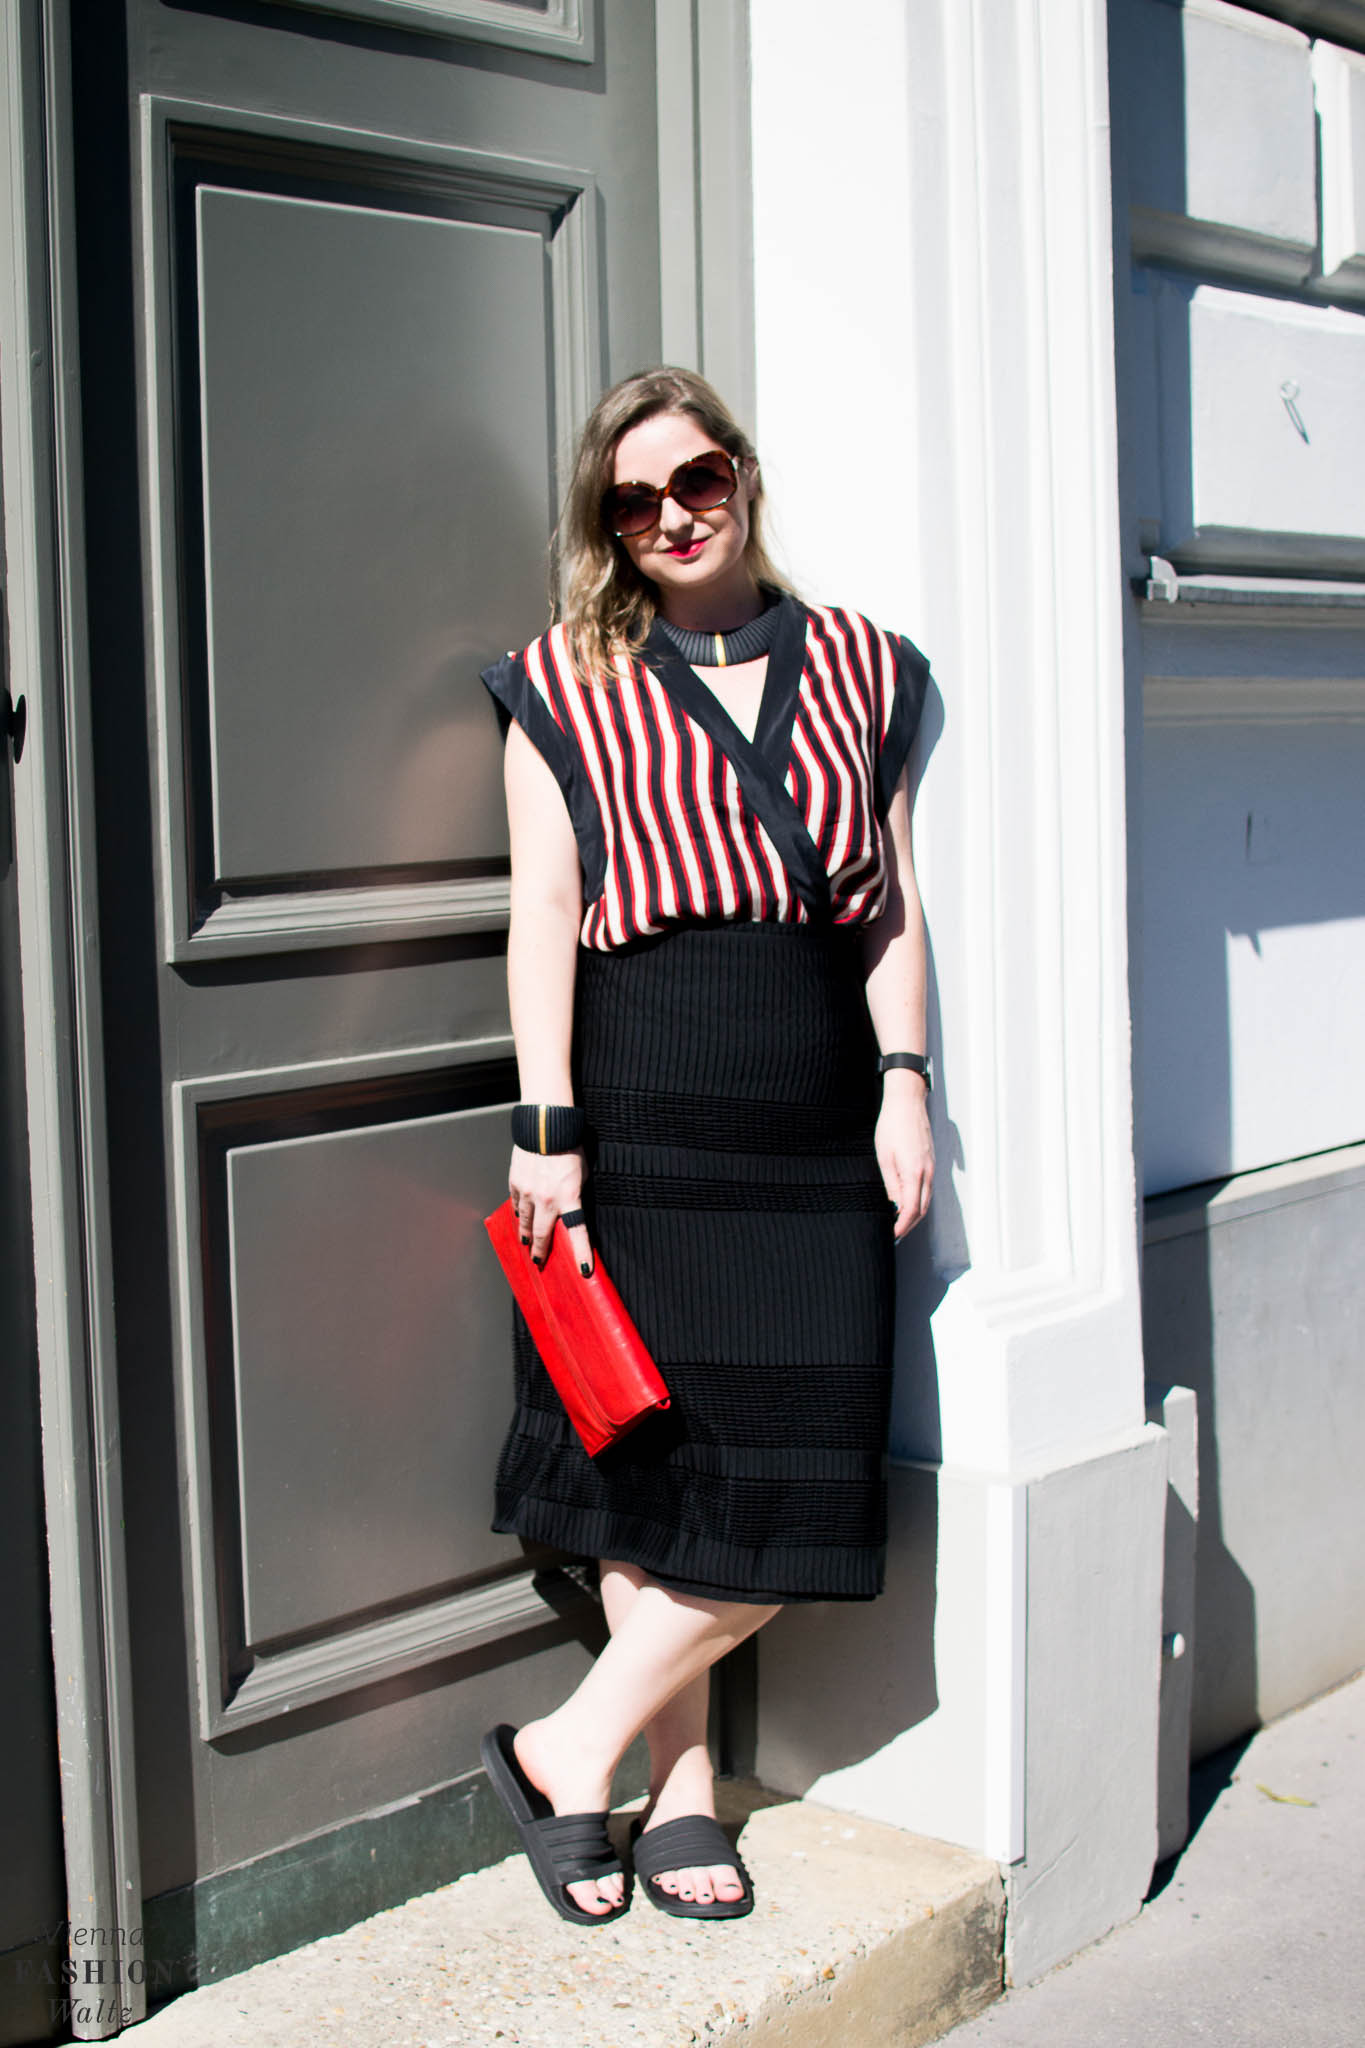 Summer Stripes, Blogger Outfit, Bold Stripes, 3D Jewellery, Dario Scapitta Design, Bally Bag, Vienna www.viennafashionwaltz.com